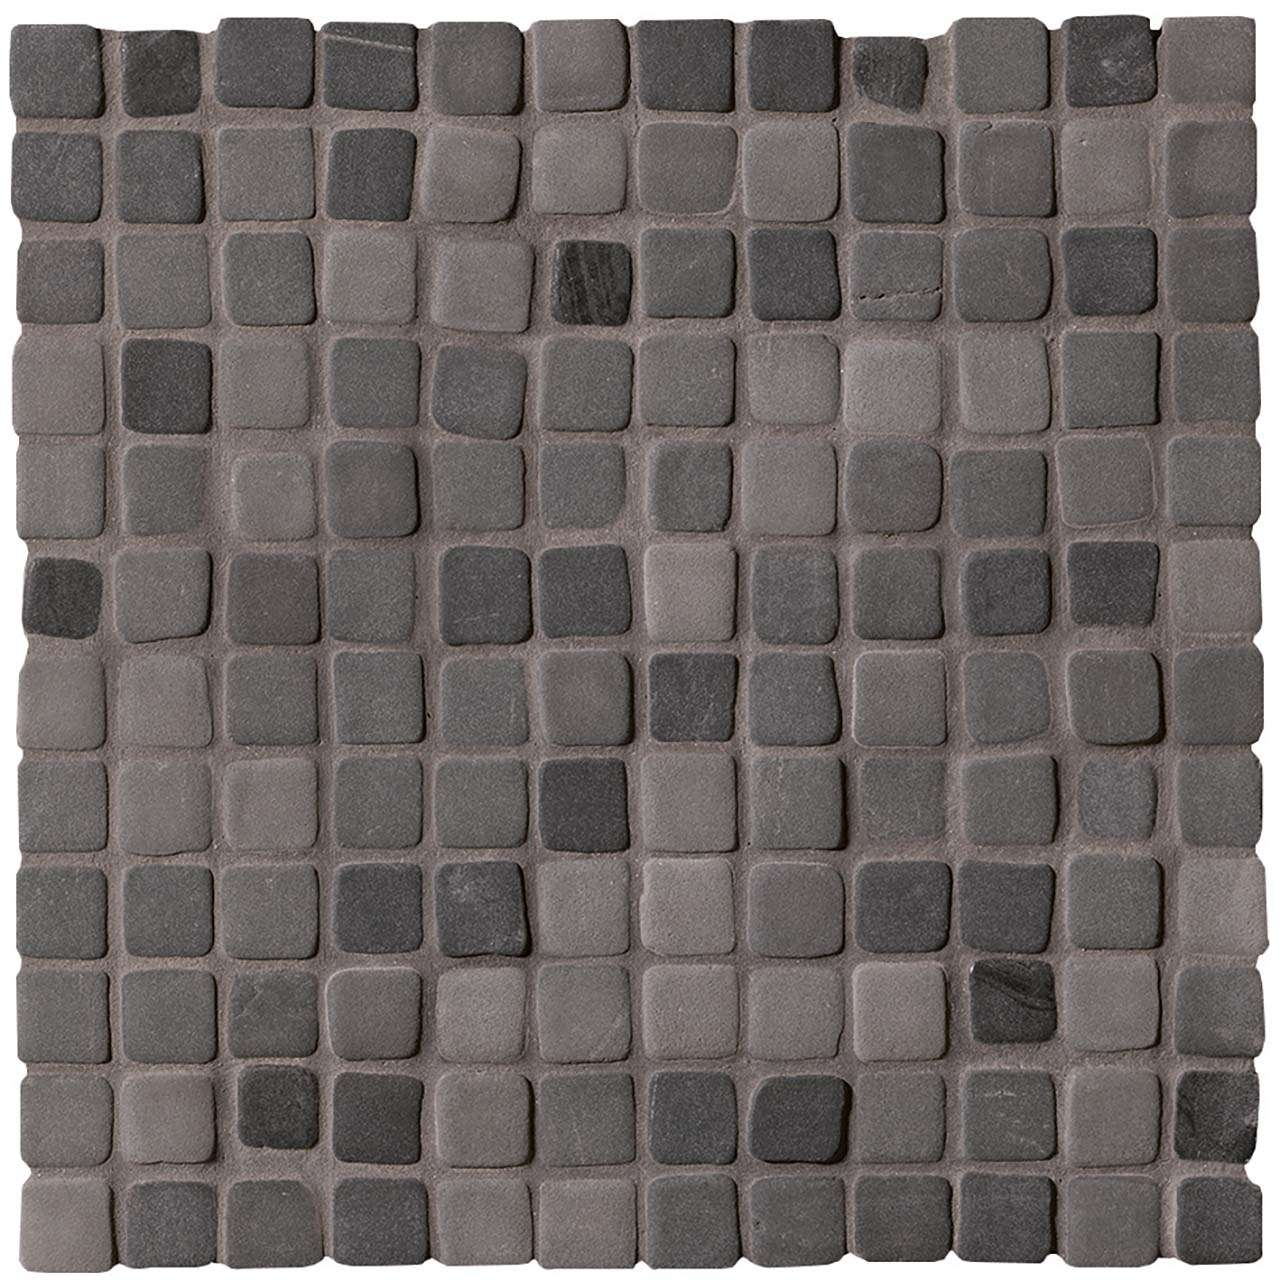 Fap Nord Night Solid Color Mosaico Matt 30x30